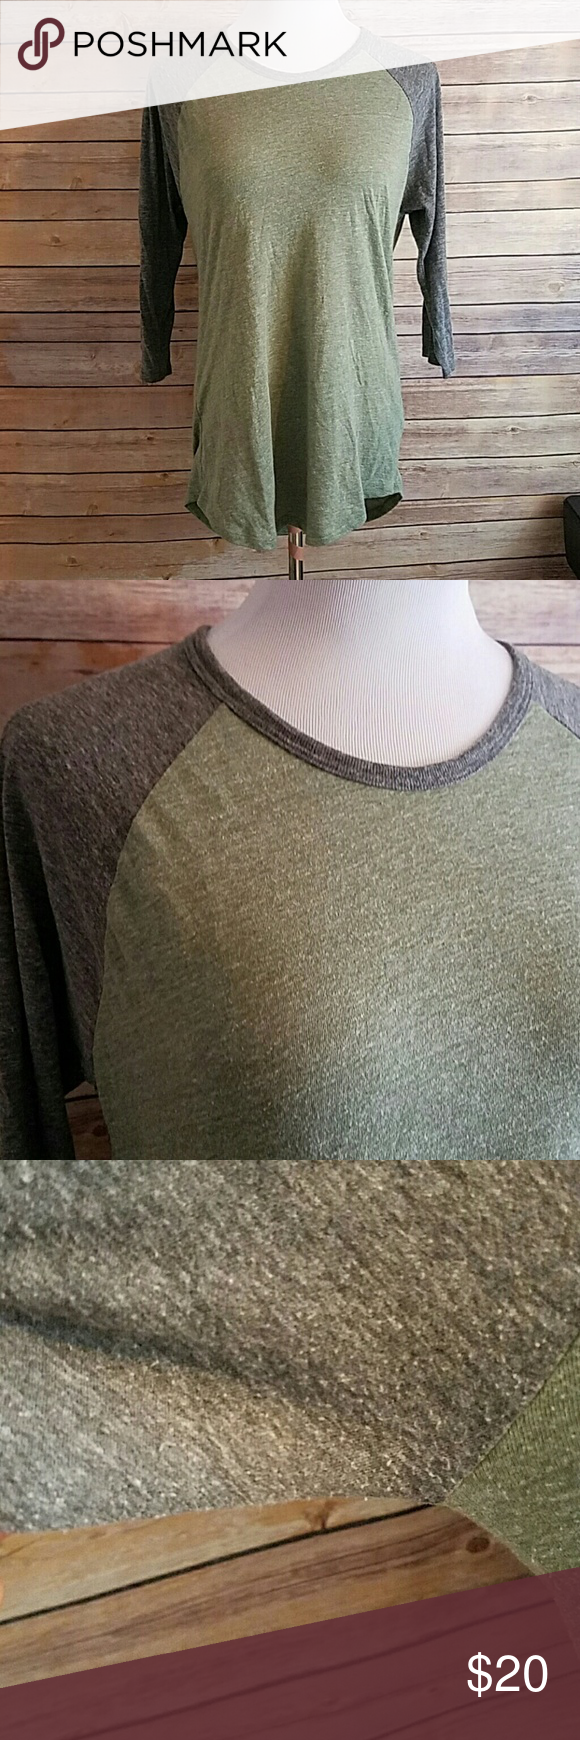 LULAROE Randy Baseball Grey Green Top LULAROE Soft Randy Baseball Grey Green Top with 3/4 Sleeve. Great condition but has some piling under arms.   Size Large LuLaRoe Tops